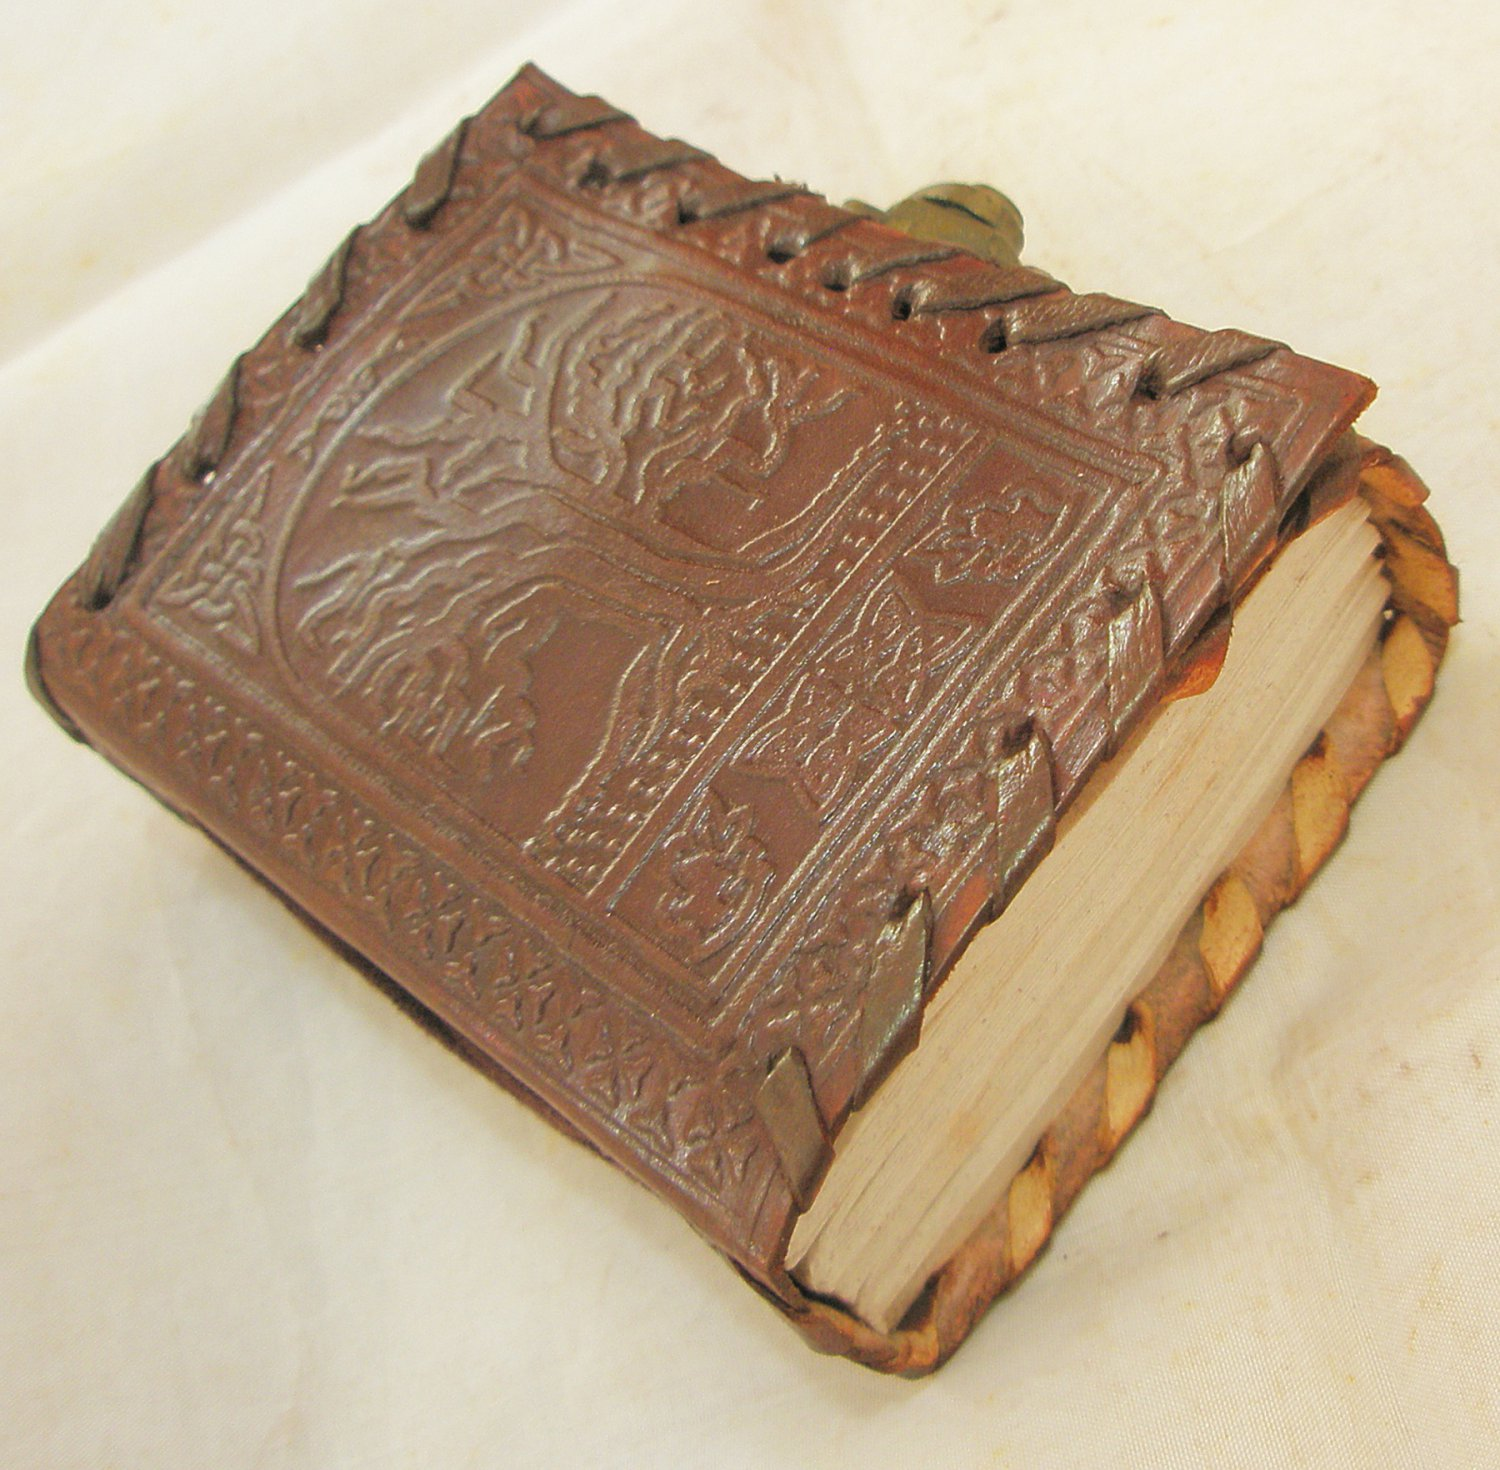 Handmade Leather Pocket Journal Celtic Tree of Life Embossed Mini Diary Blank Book of Shadows Wicca